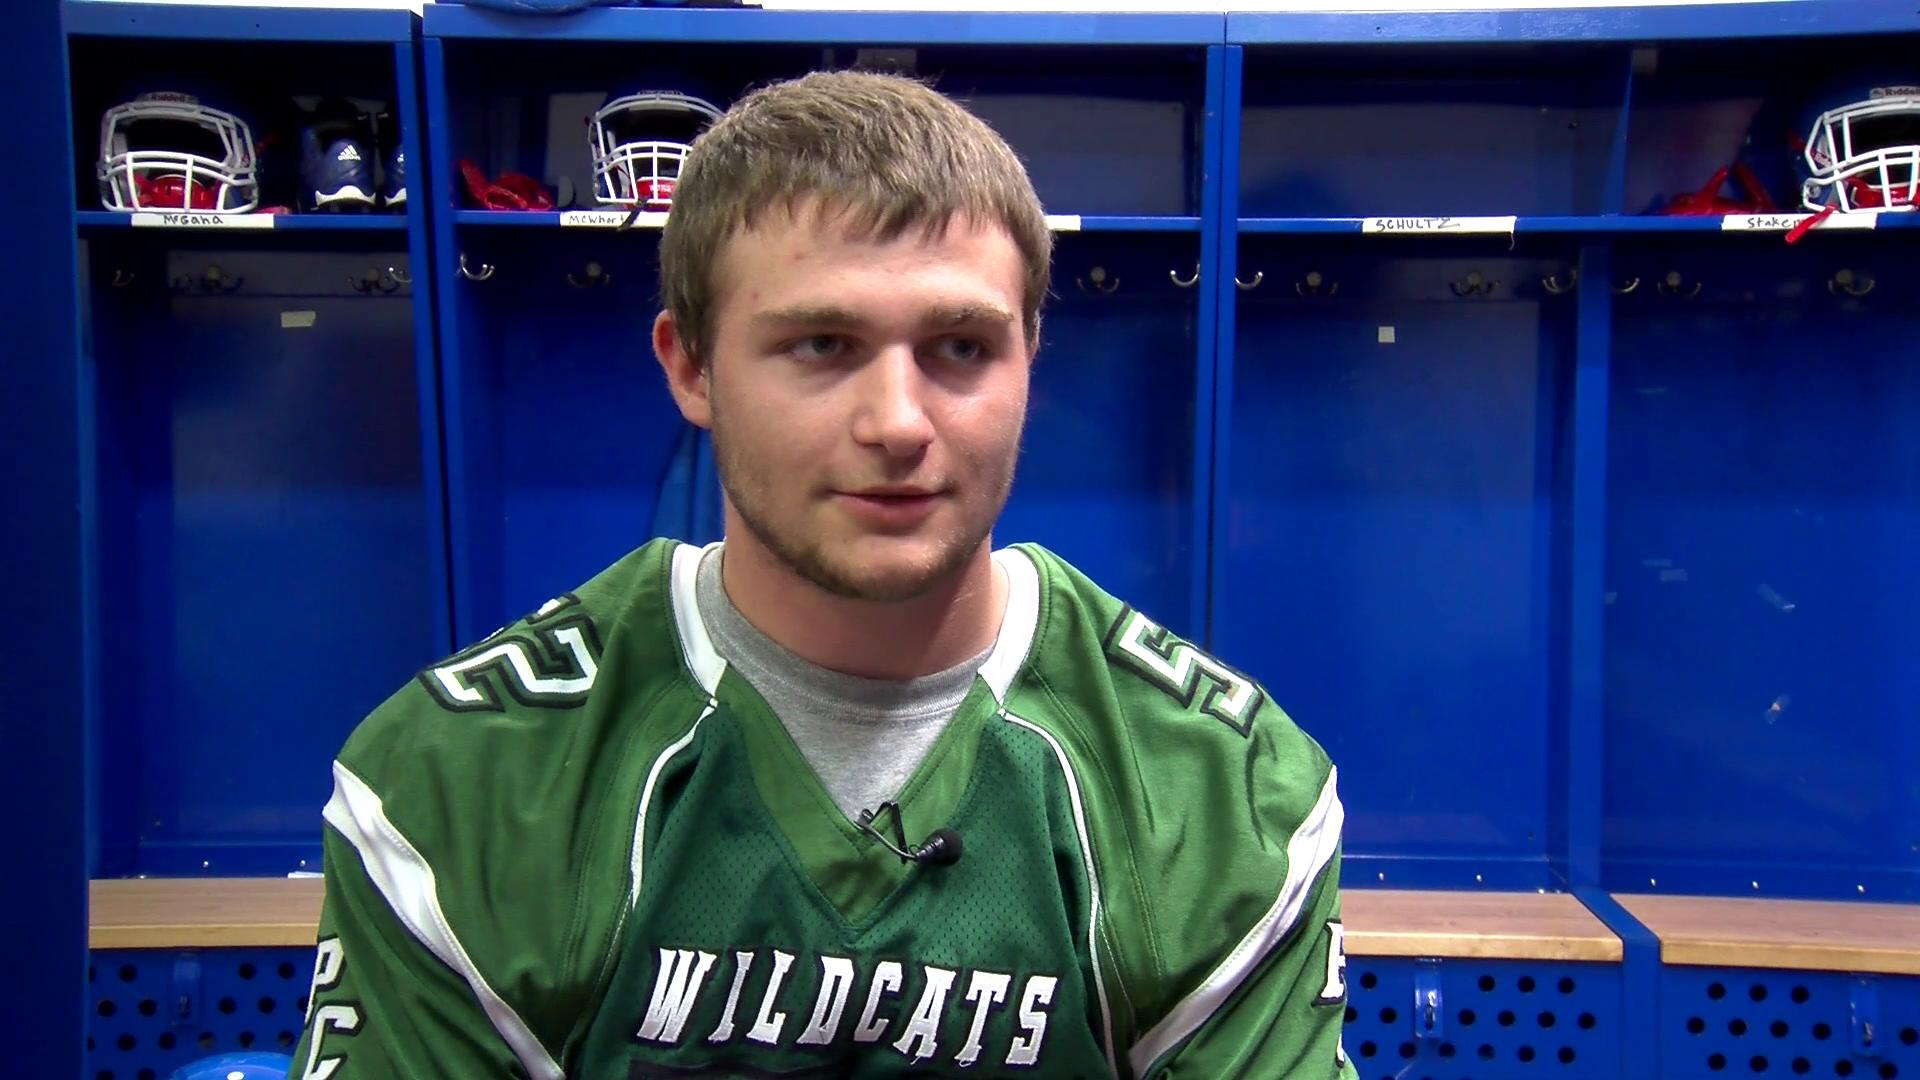 VIDEO 2016 Media Day: Daulton Schultheis